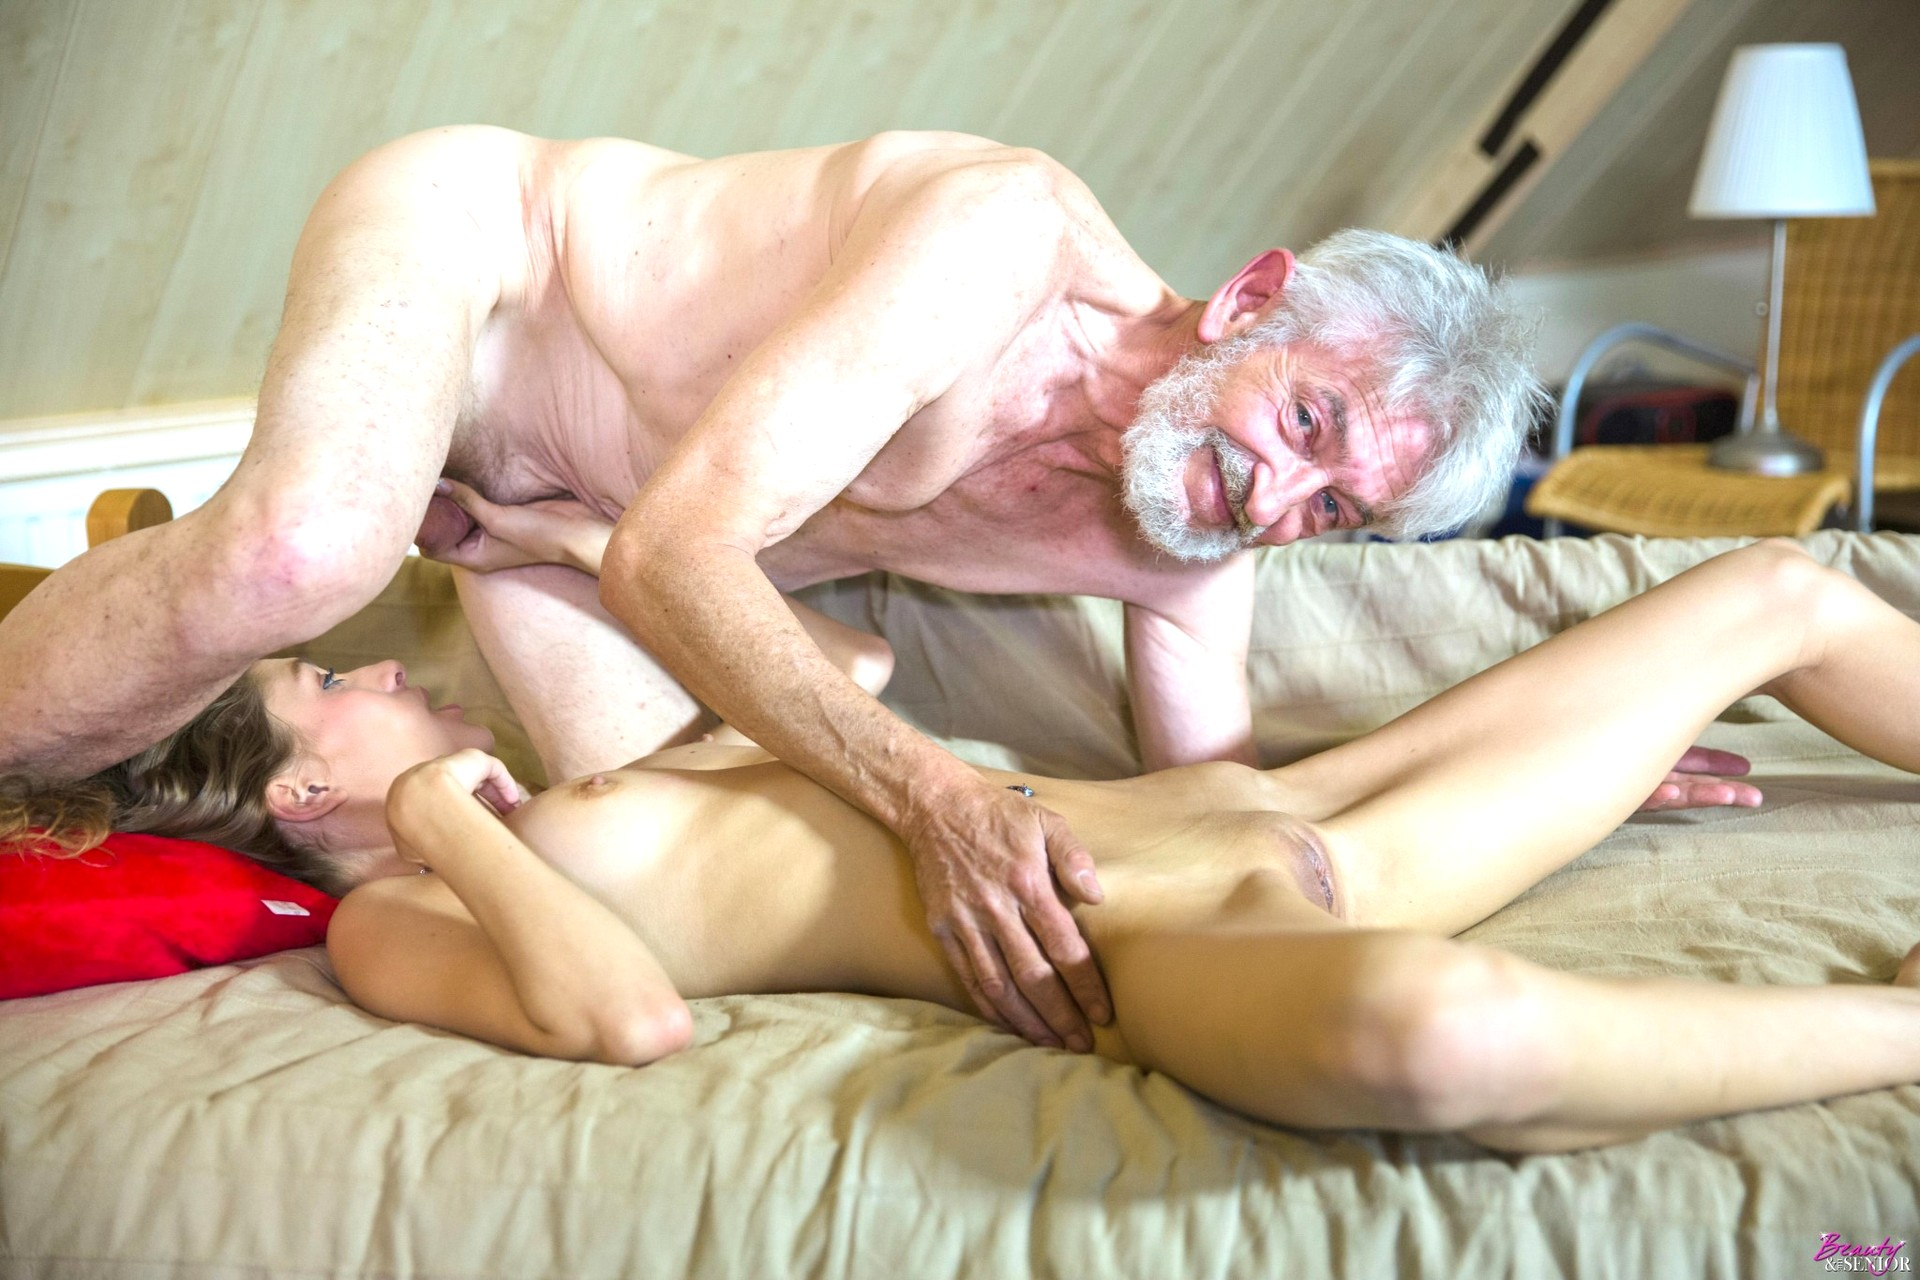 Elderly couple with unrelenting sex drive